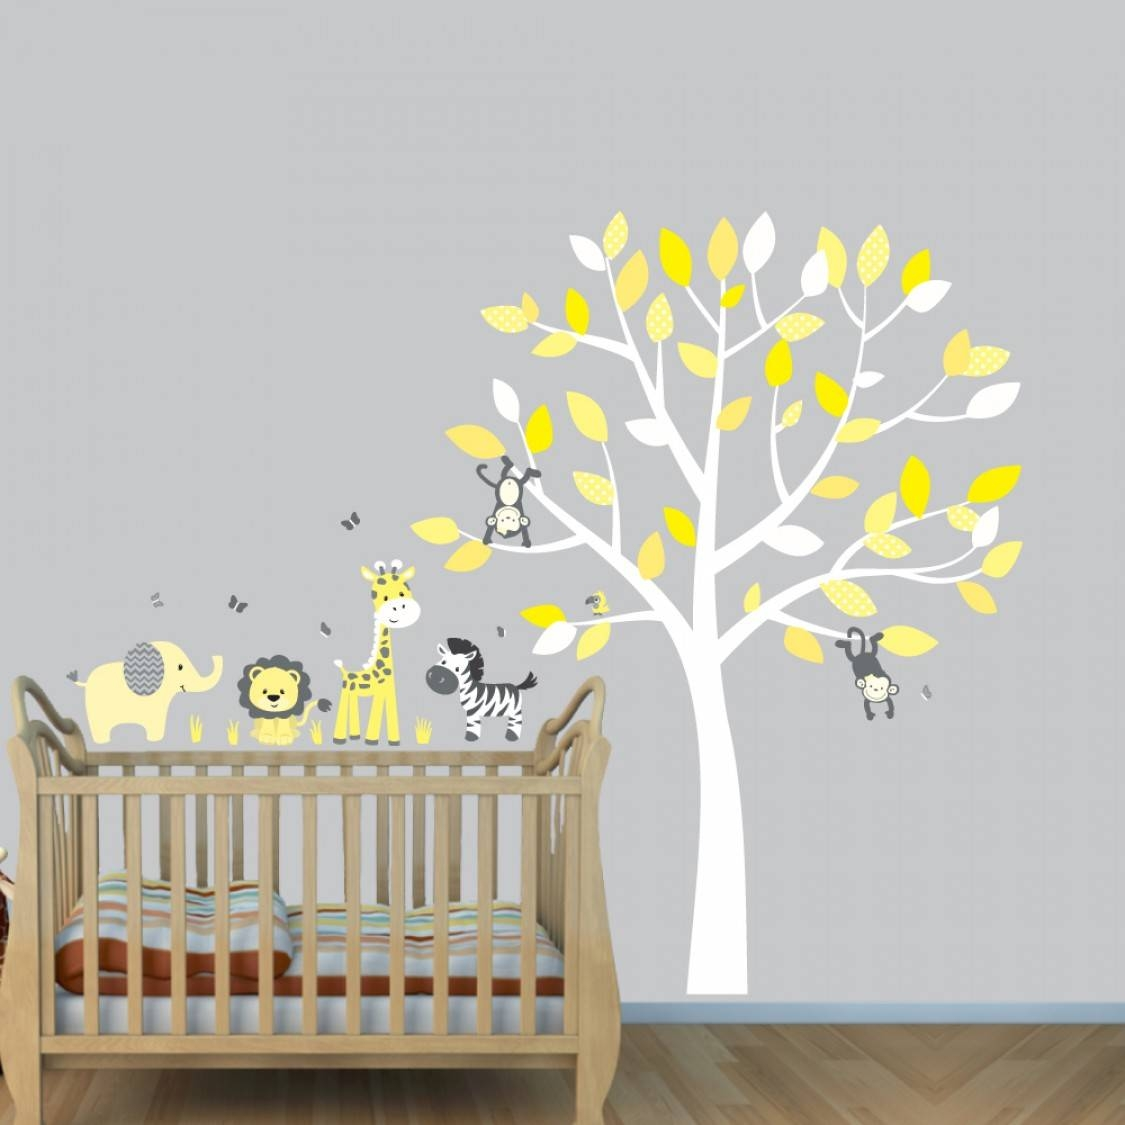 Grey Jungle Wall Stickers With Elephant Decals For Yellow Nursery With Regard To 2018 Yellow And Grey Wall Art (Gallery 22 of 25)